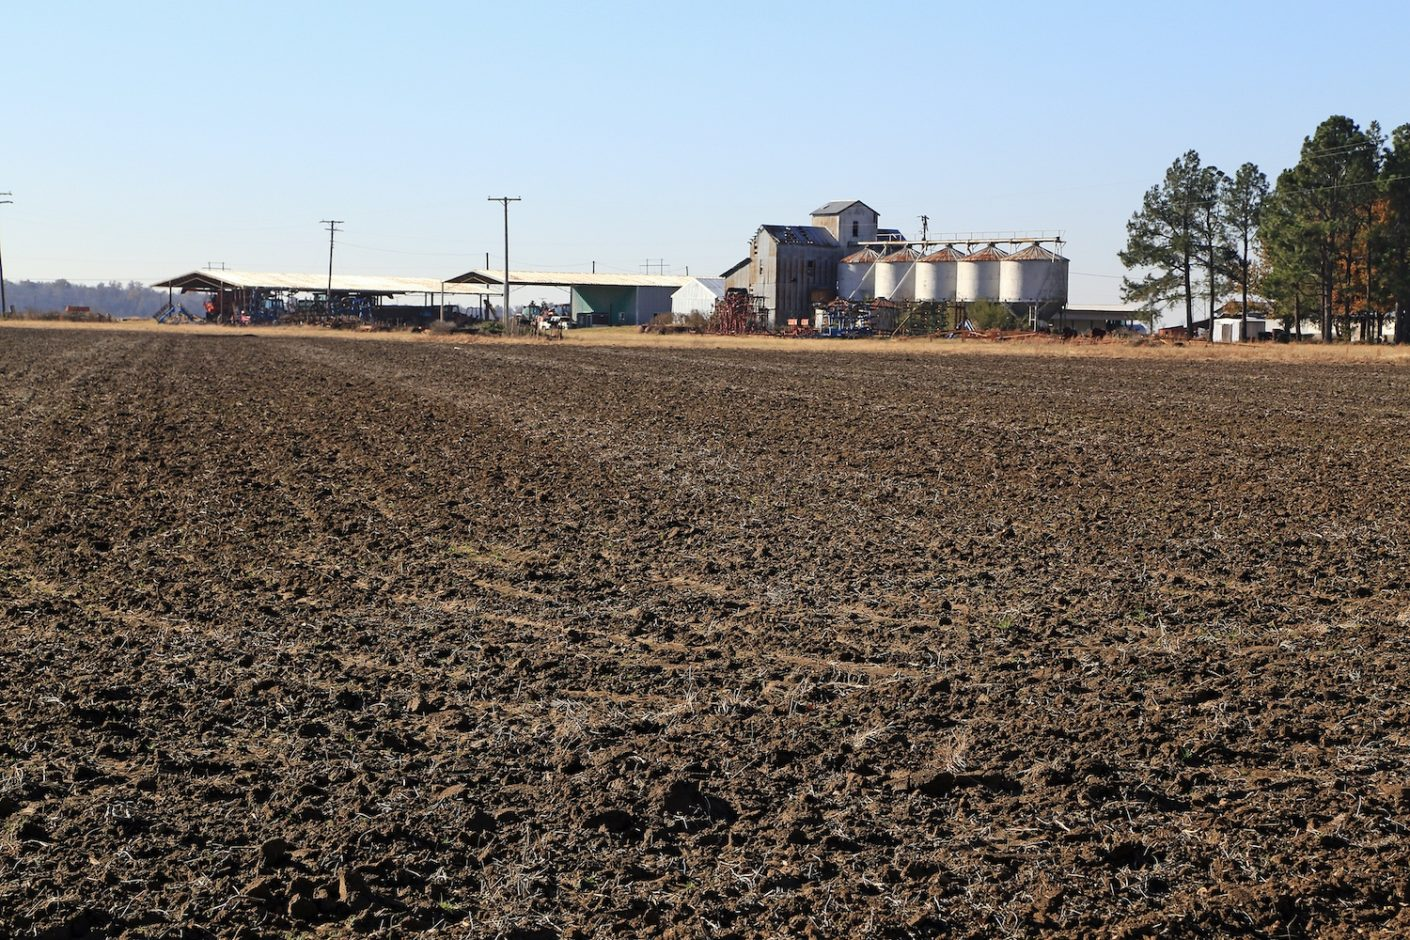 The Biden administration will pay farmers more money not to farm